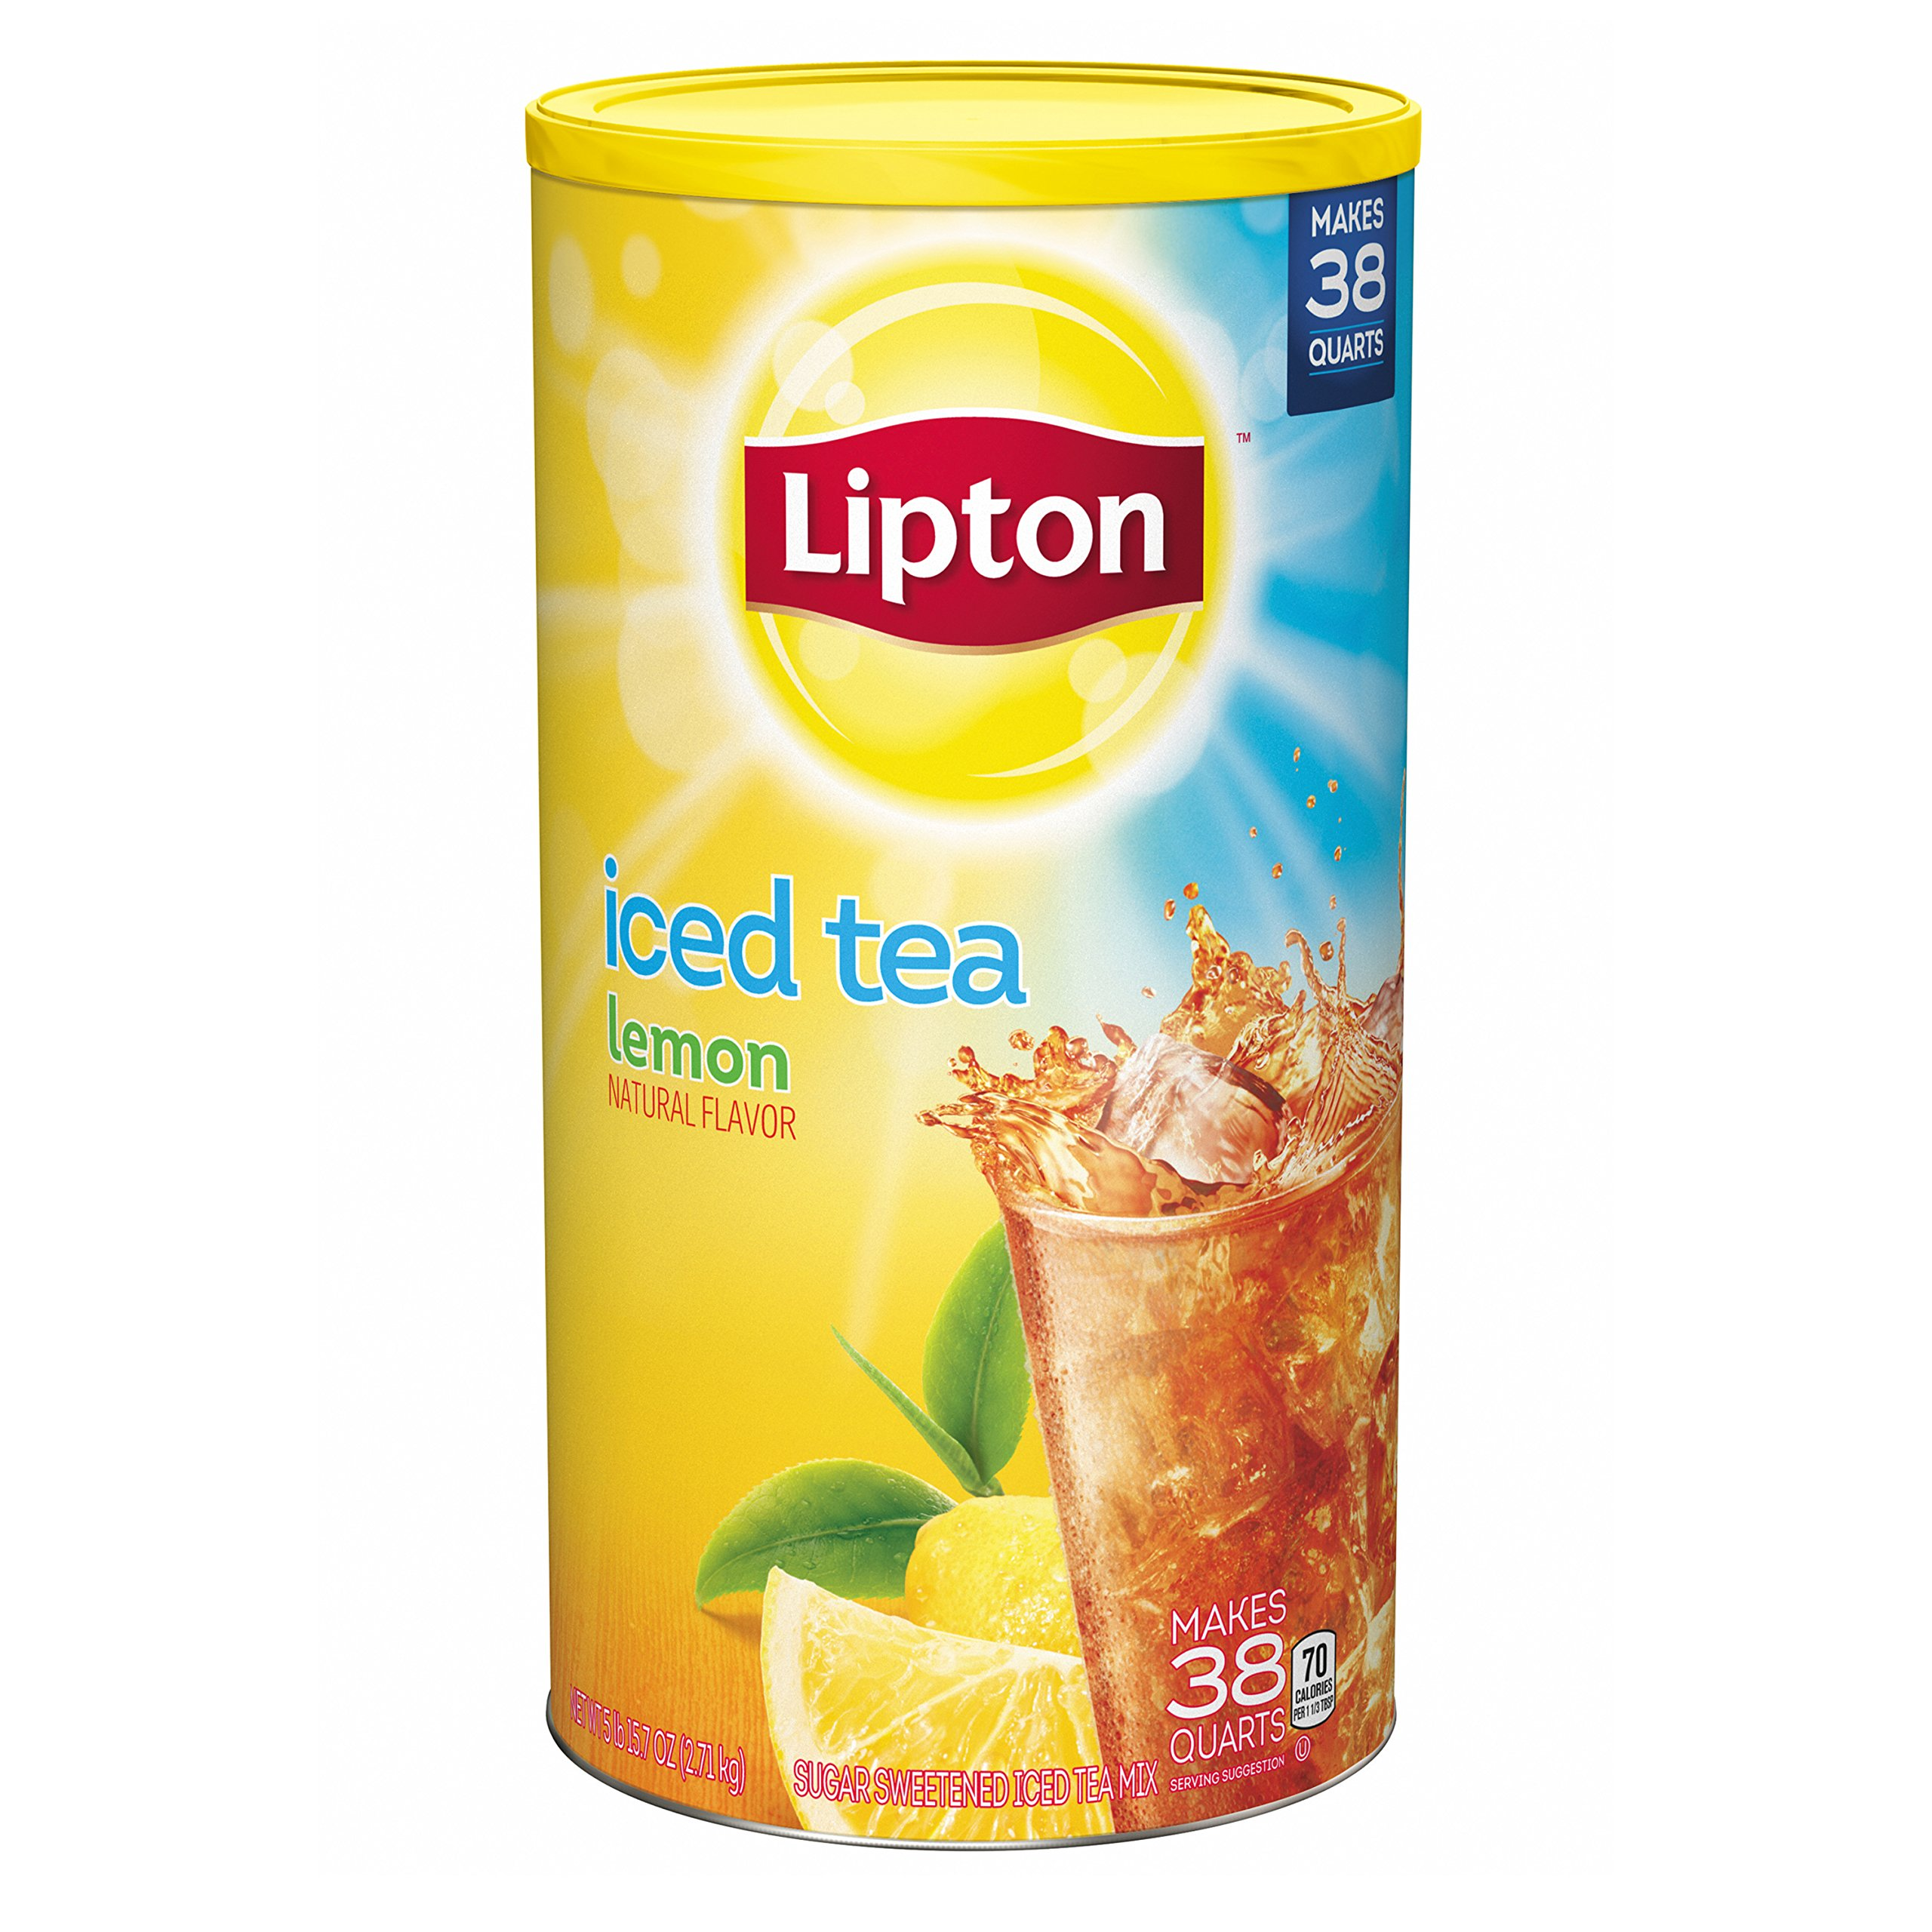 Lipton Iced Tea Mix, Lemon 38 qt